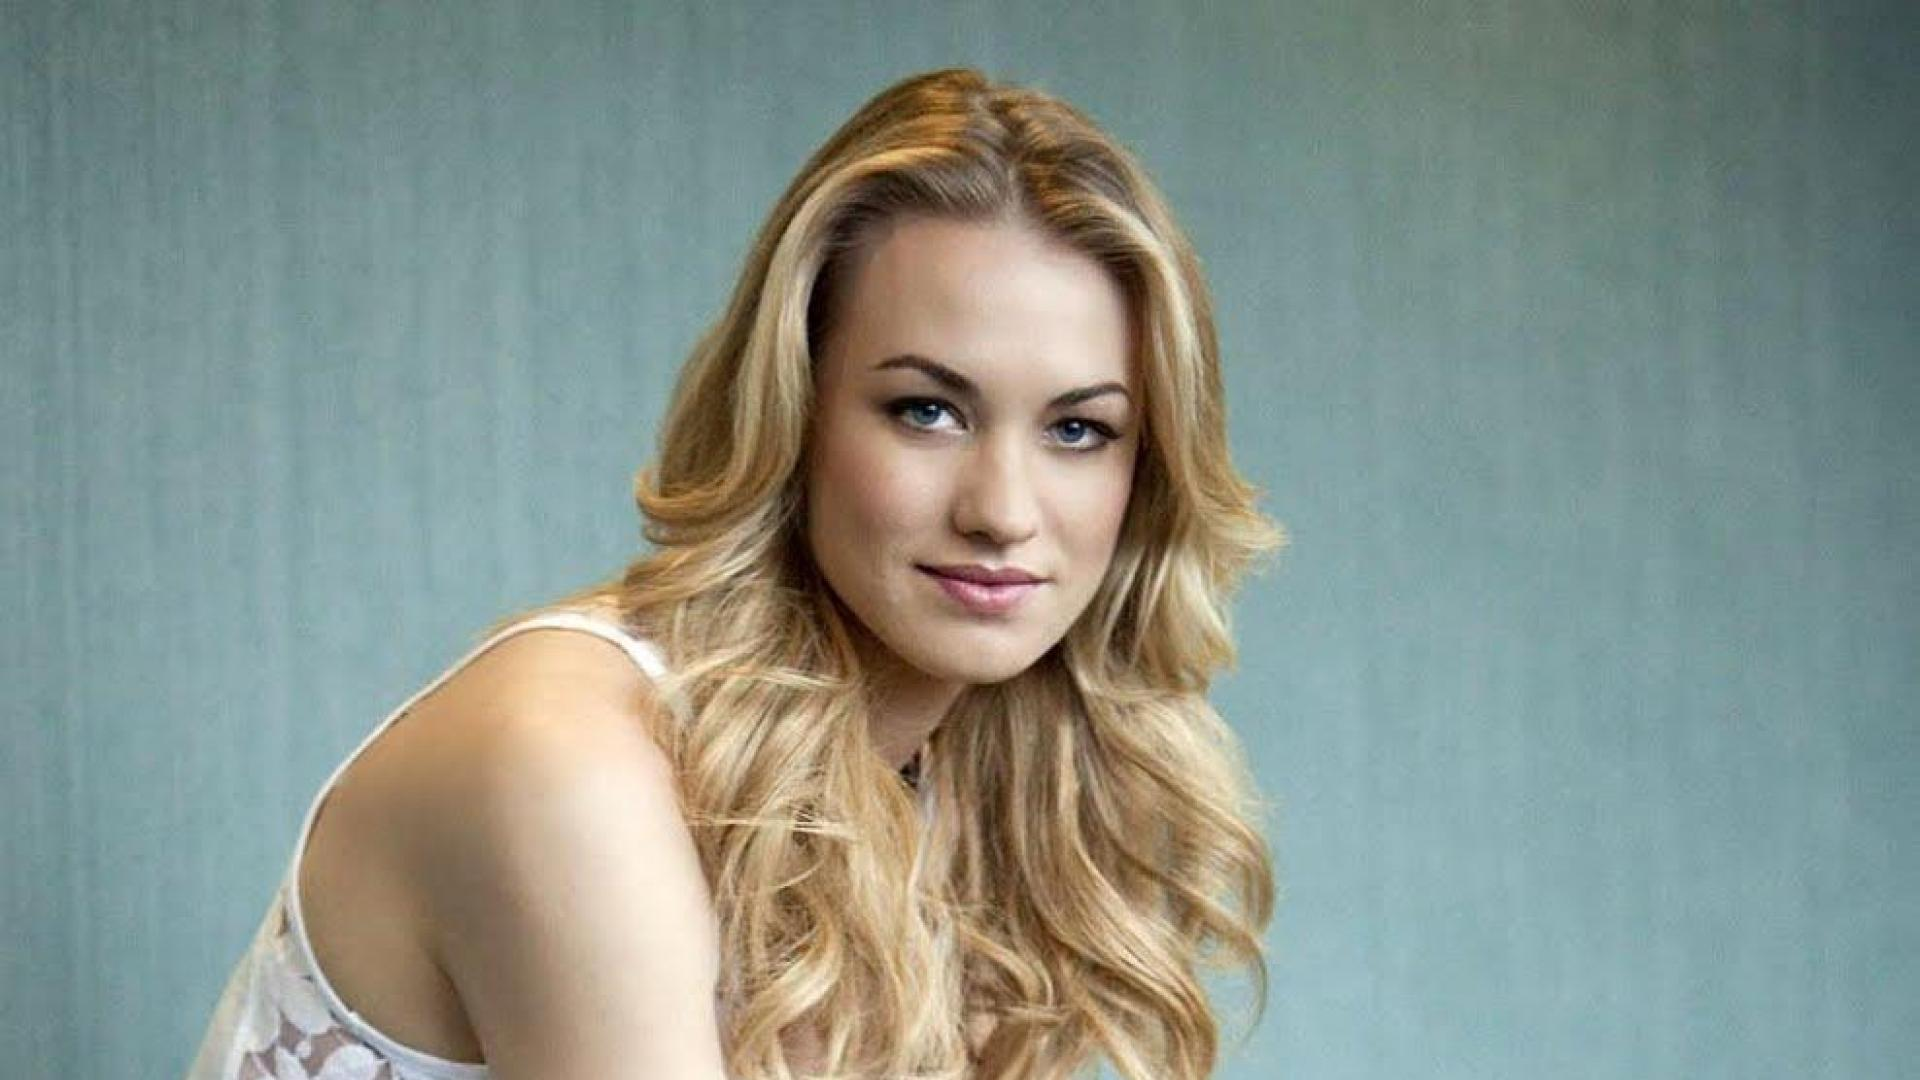 Yvonne strahovski Women HD Wallpapers Desktop Backgrounds 1920x1080